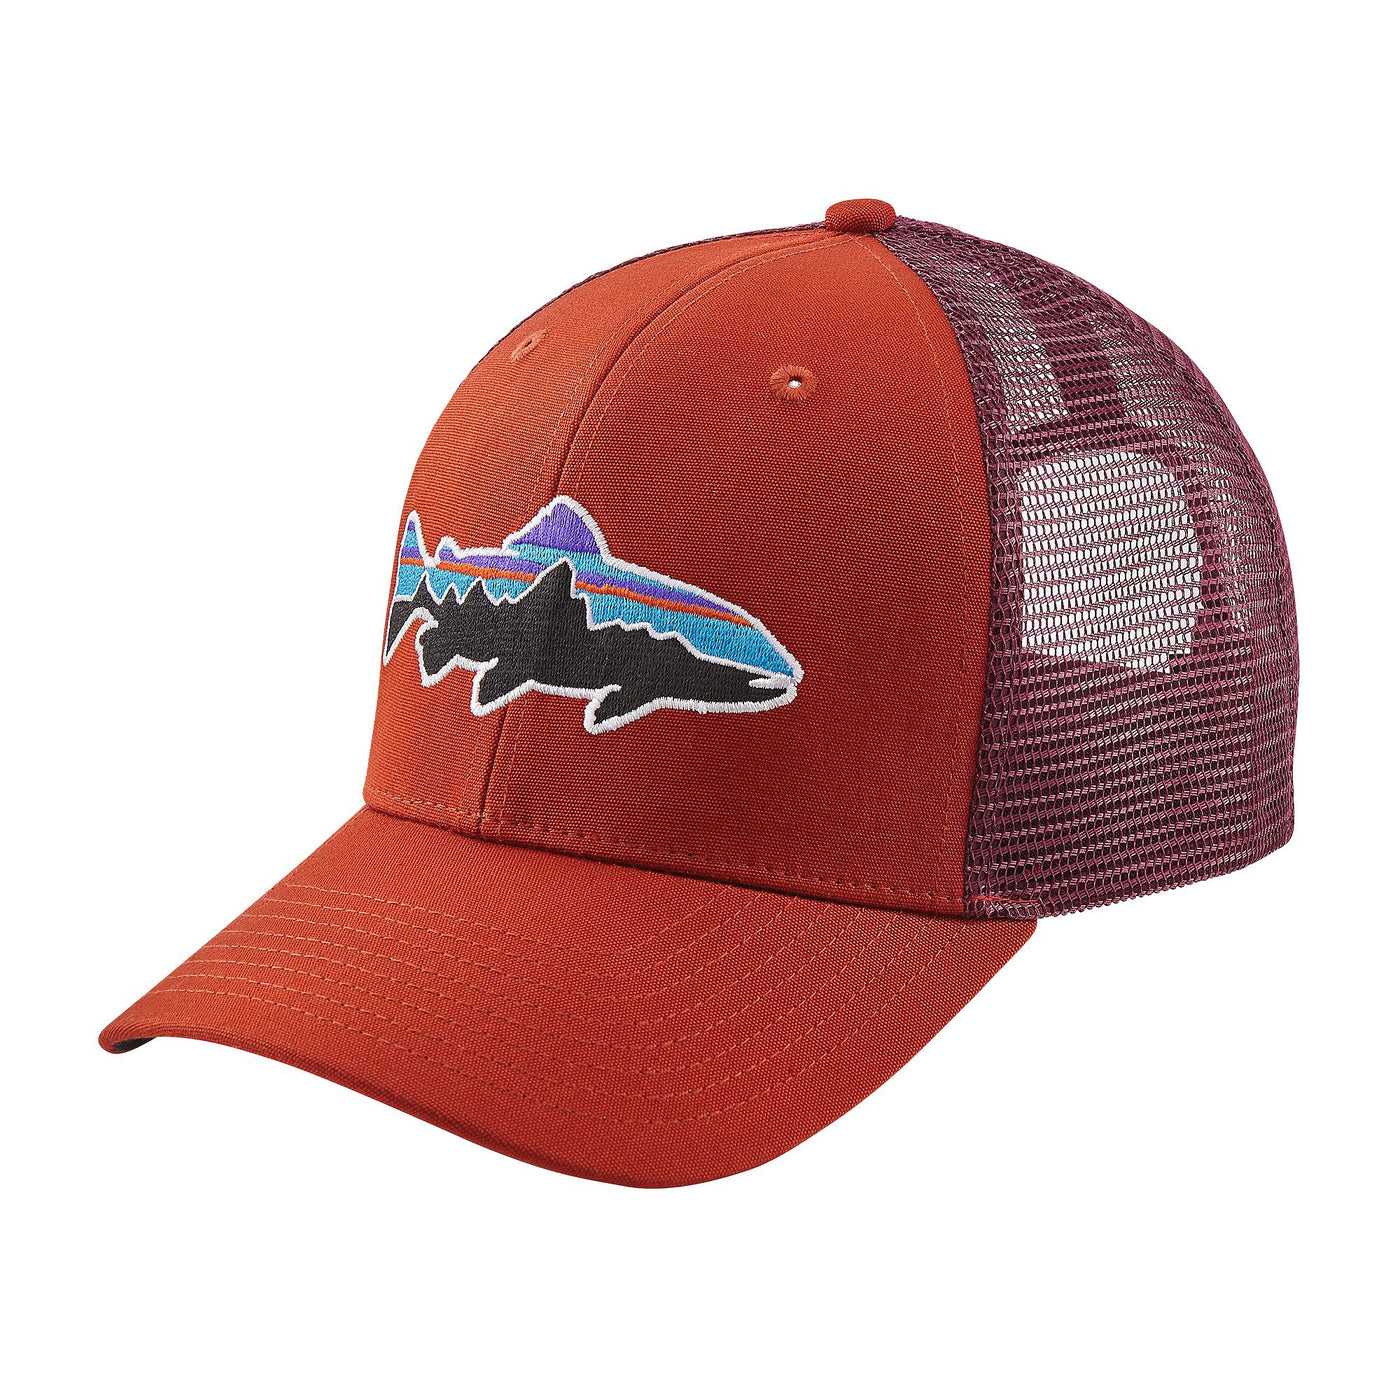 39b408999fda7 Patagonia Fitz Roy Trout Trucker Hat Roots Red – Trailside Outfitter